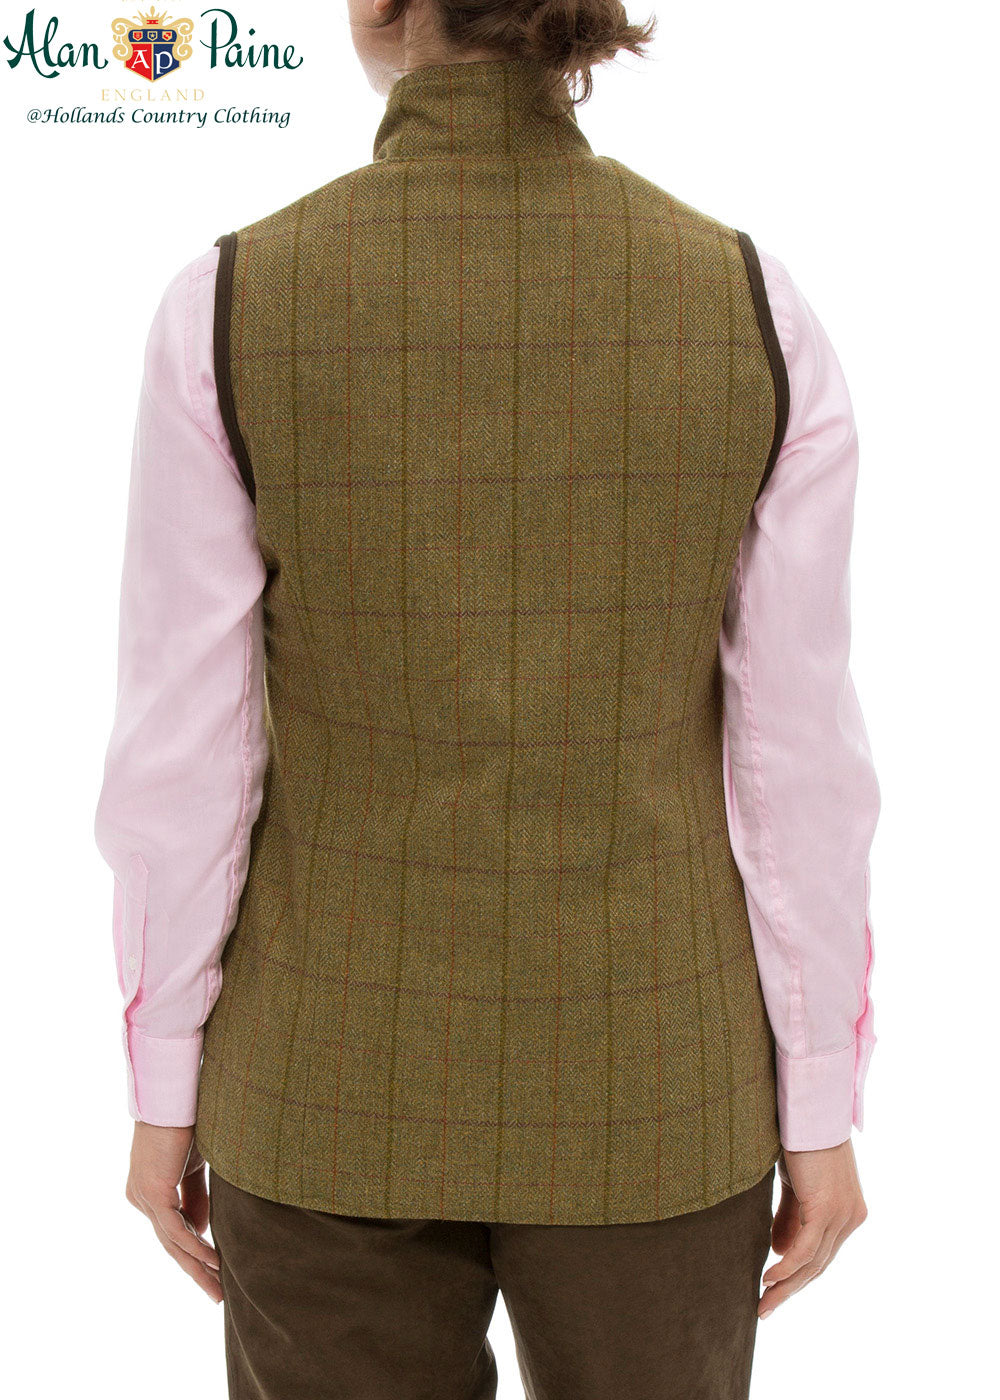 rear view Rutland Tweed Shooting Waistcoat by Alan Paine